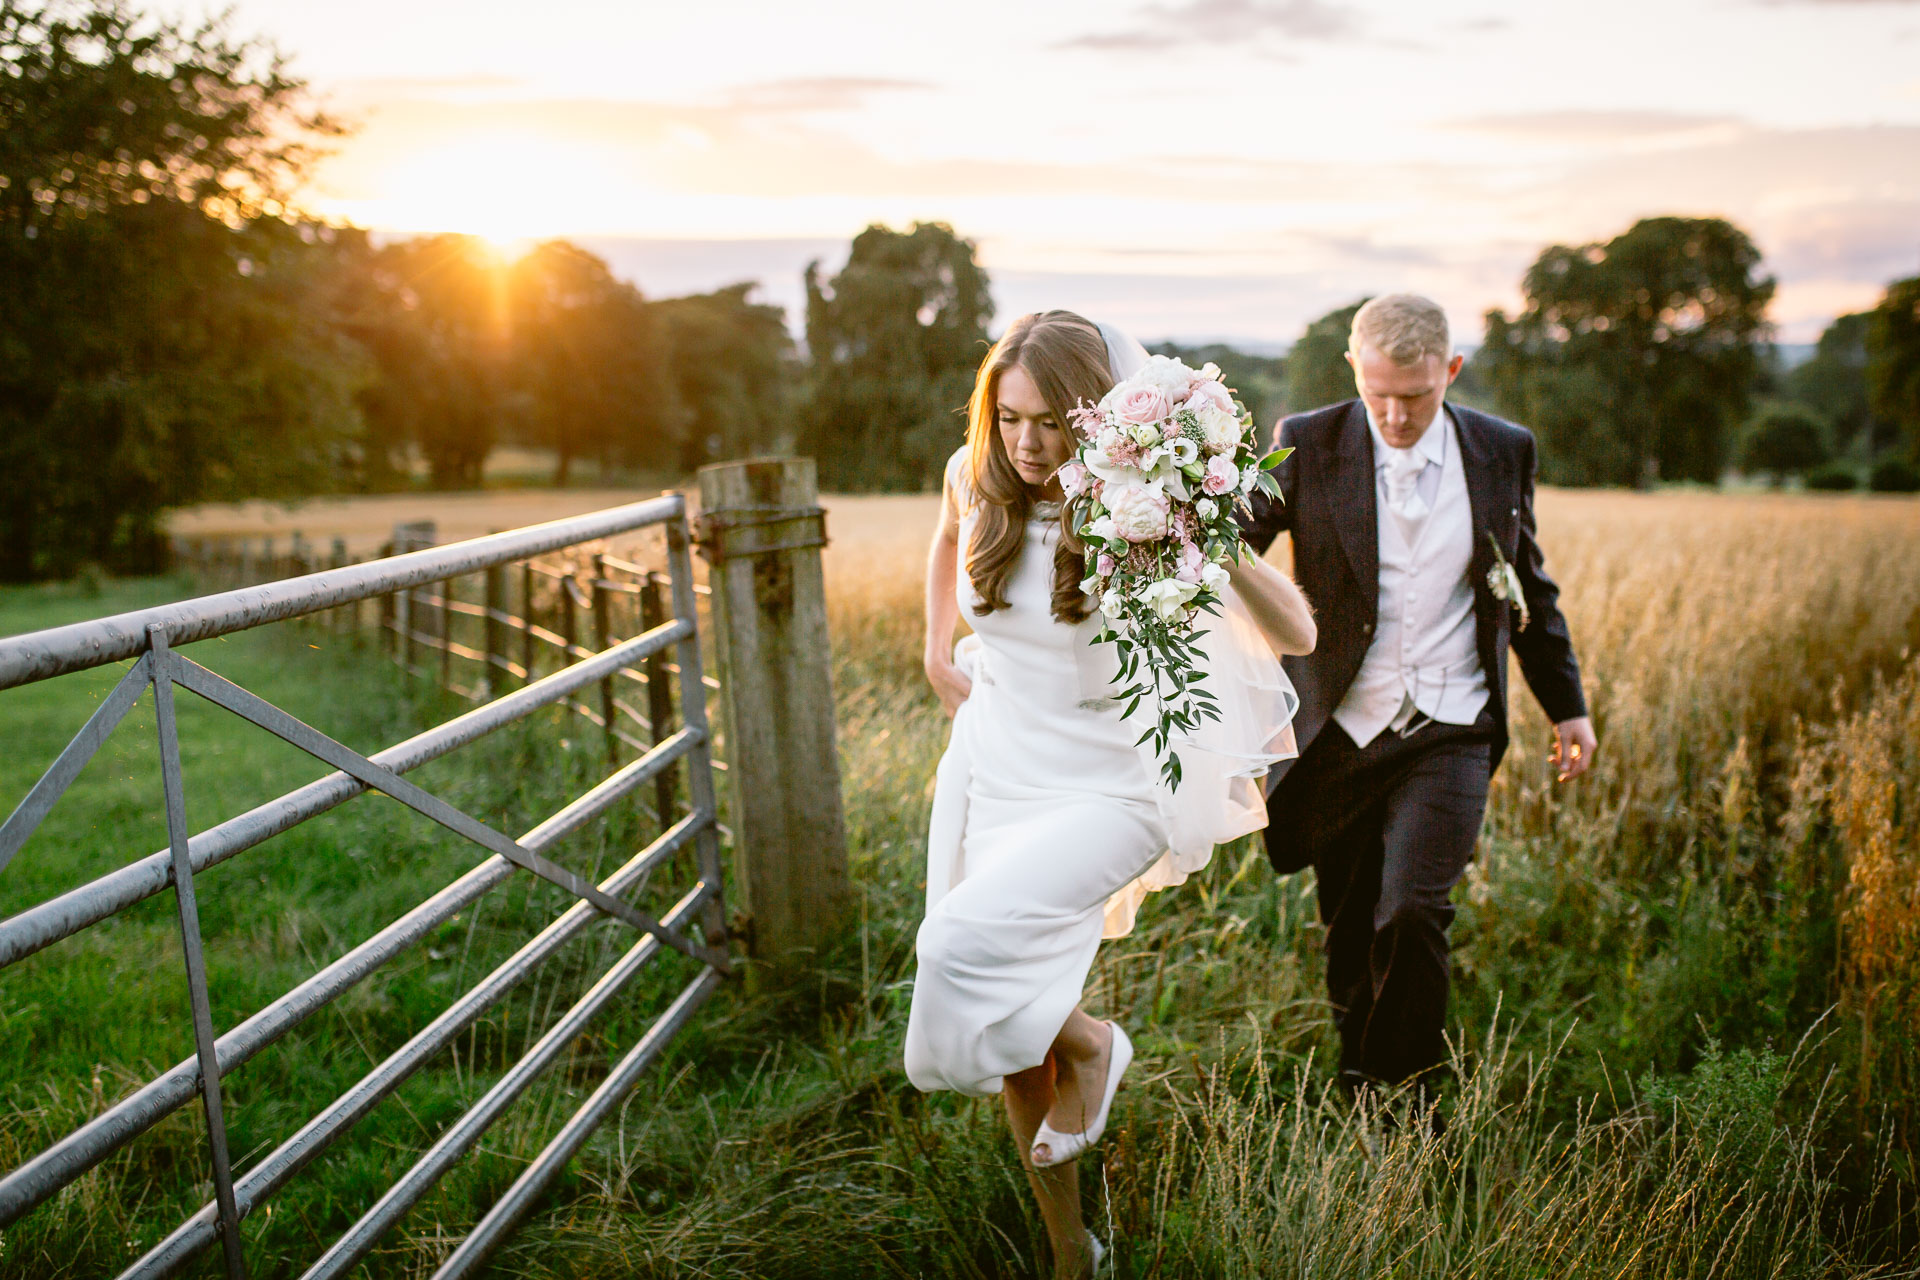 The Citadel wedding Shropshire Sarah-Jane and Steve bride and groom walking through the gate in the sunset